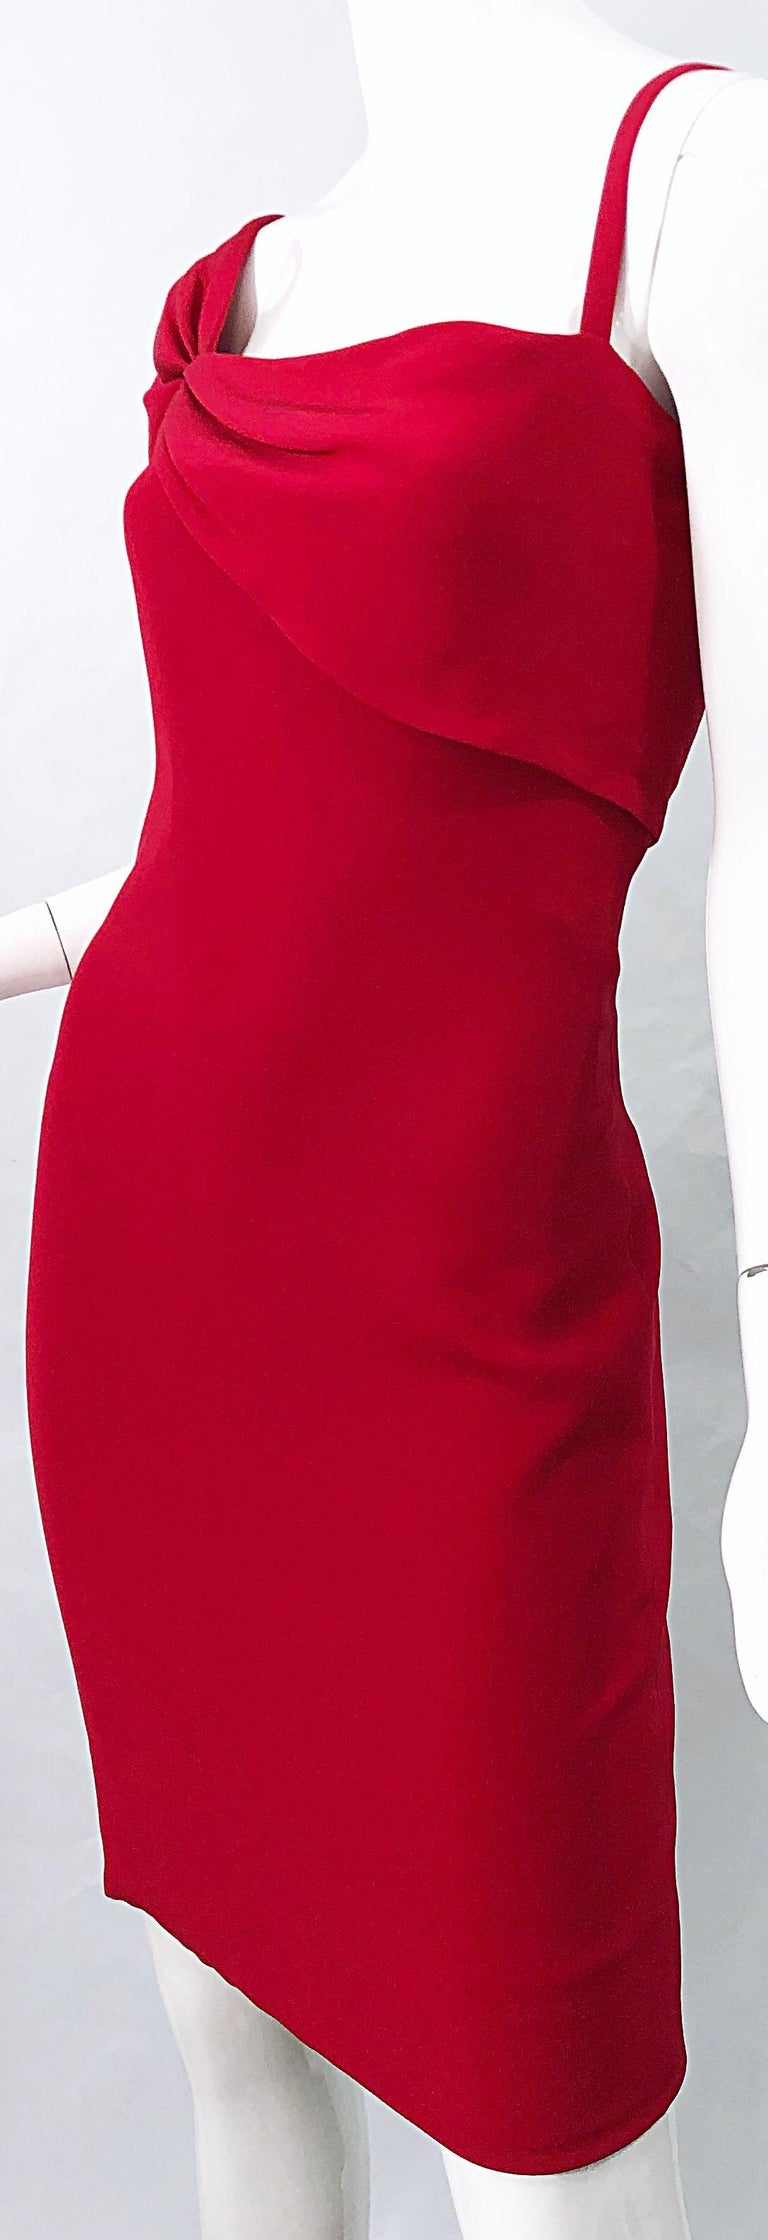 Vintage Bill Blass 1990s Size 6 Lipstick Red One Shoulder 90s Silk Dress For Sale 4